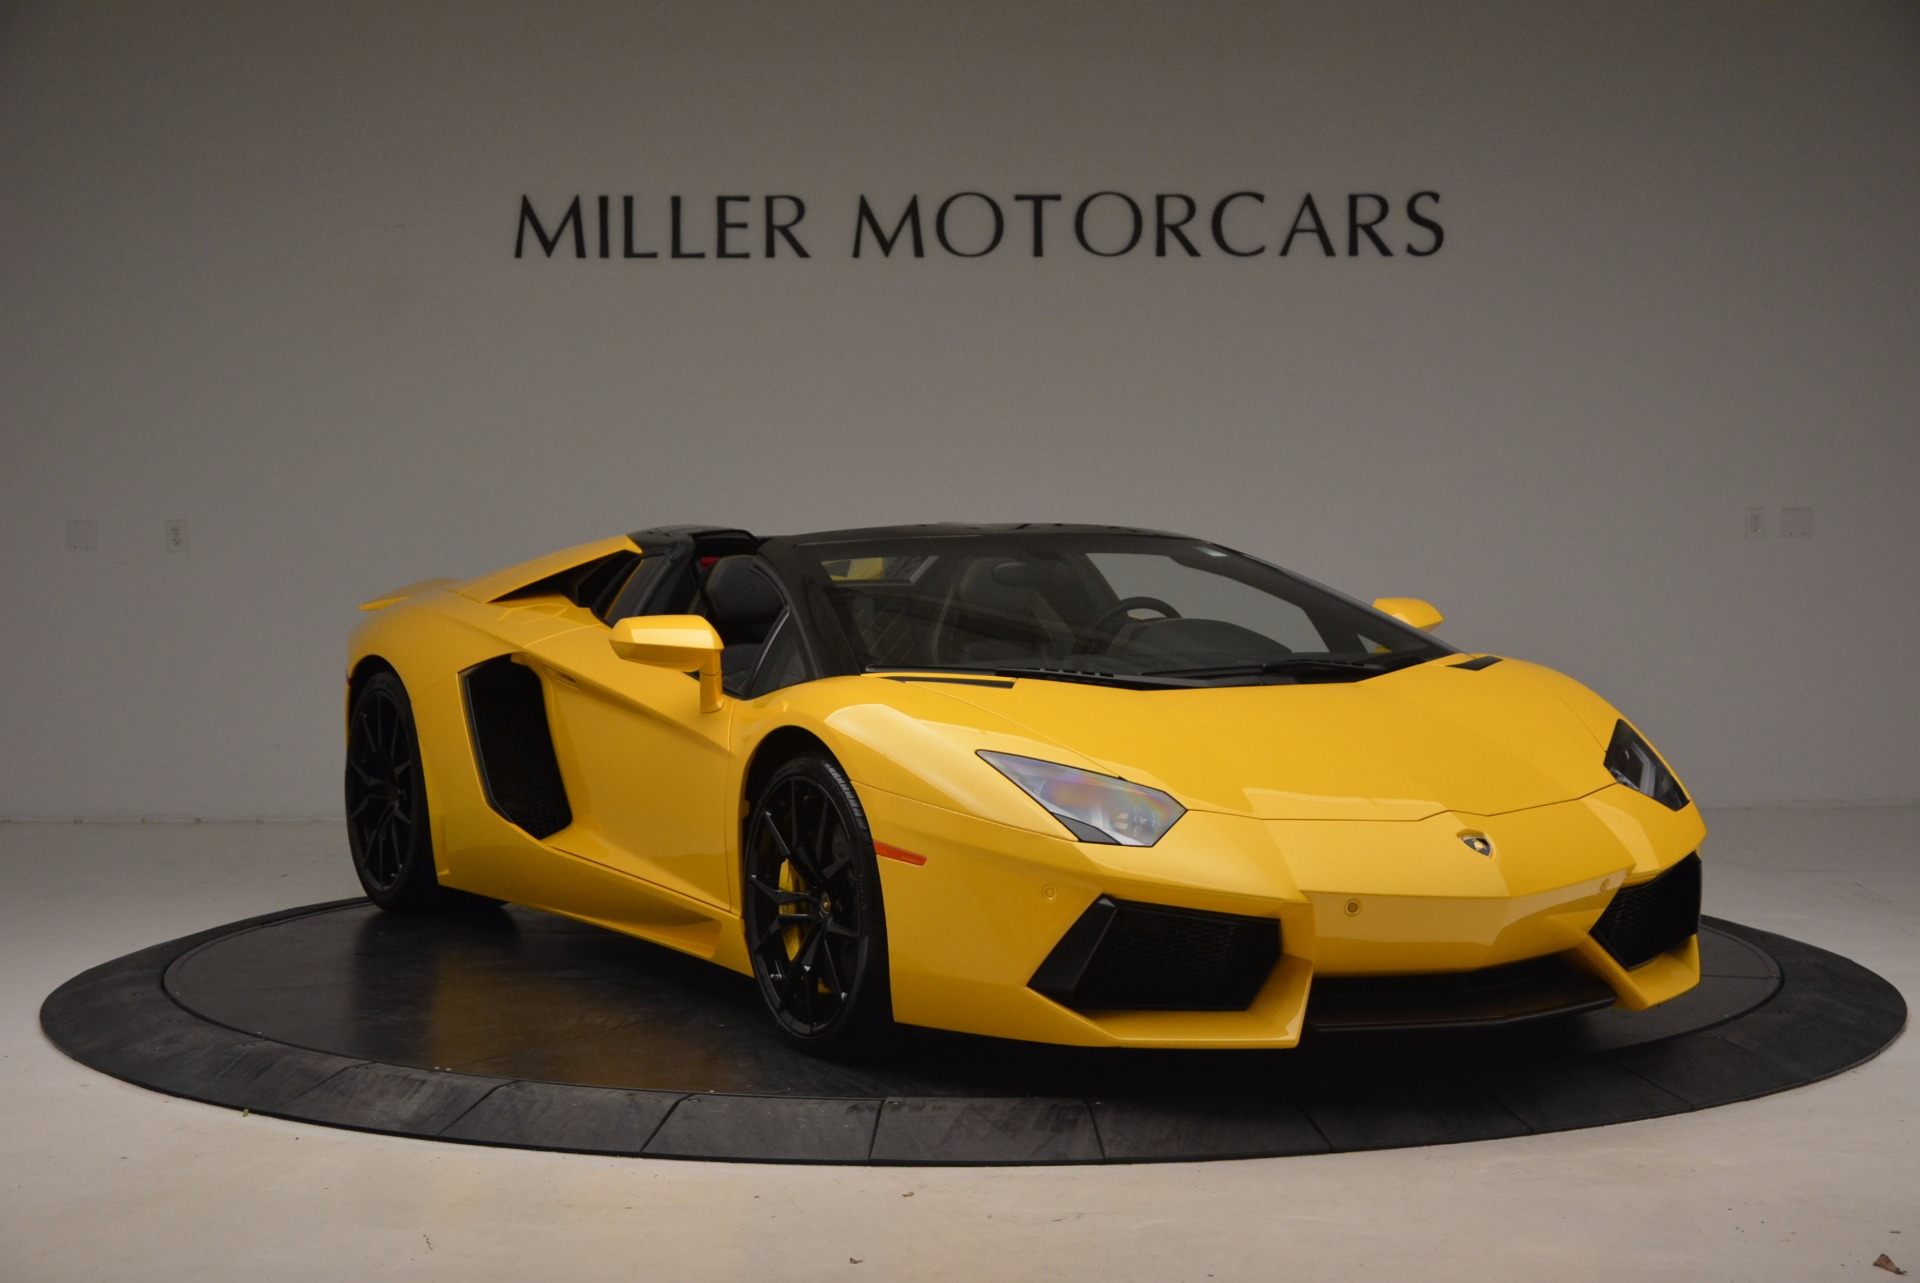 Used 2015 Lamborghini Aventador LP 700-4 Roadster For Sale In Westport, CT 1774_p12